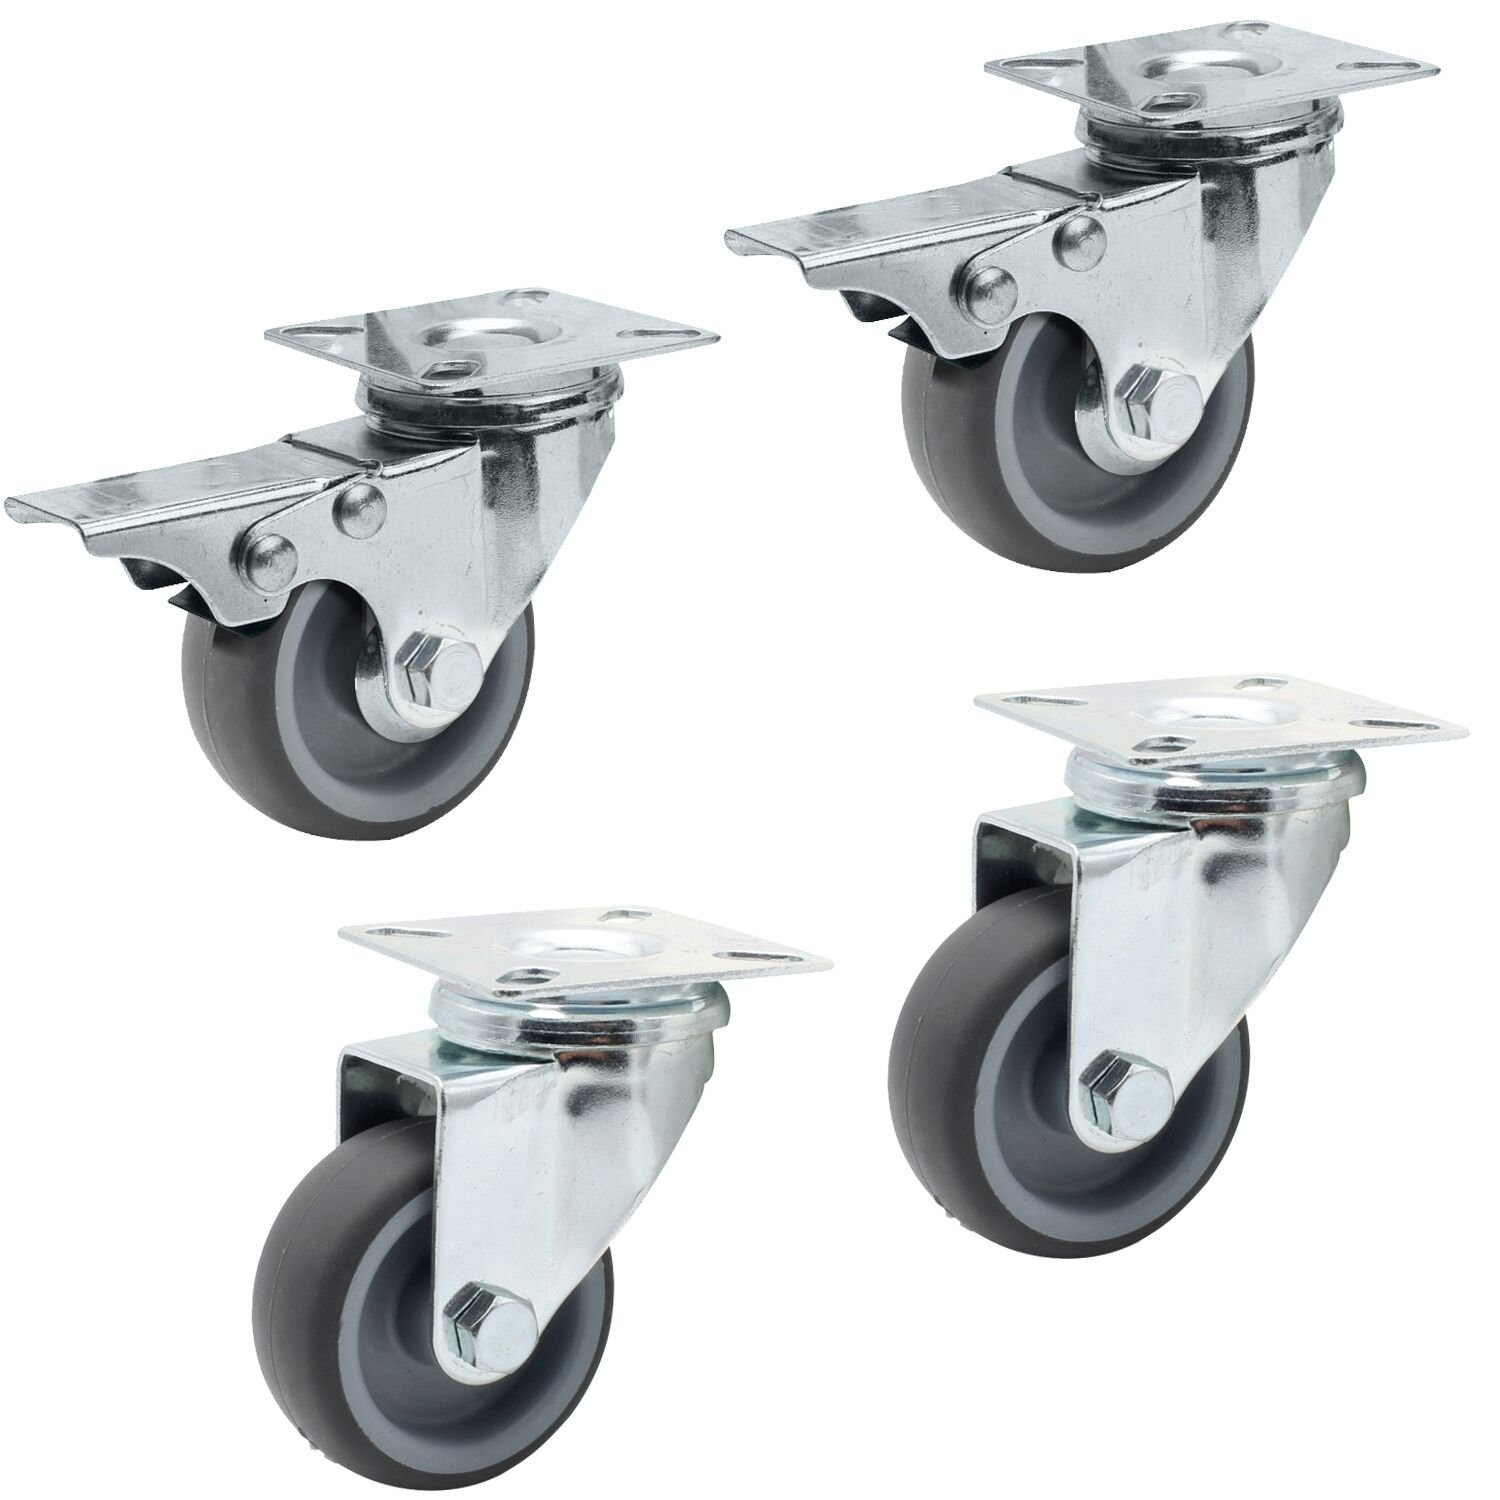 YITOO 4 piece castors 50mm set (2 swivel castors 50mm + 2 swivel castors with brake 50mm) Transport castors Furniture castors Apparatus castors Heavy duty castors Polypropylene Galvanized steel Light gray castors 50mm Load capacity 50KG / roll 150KG / set